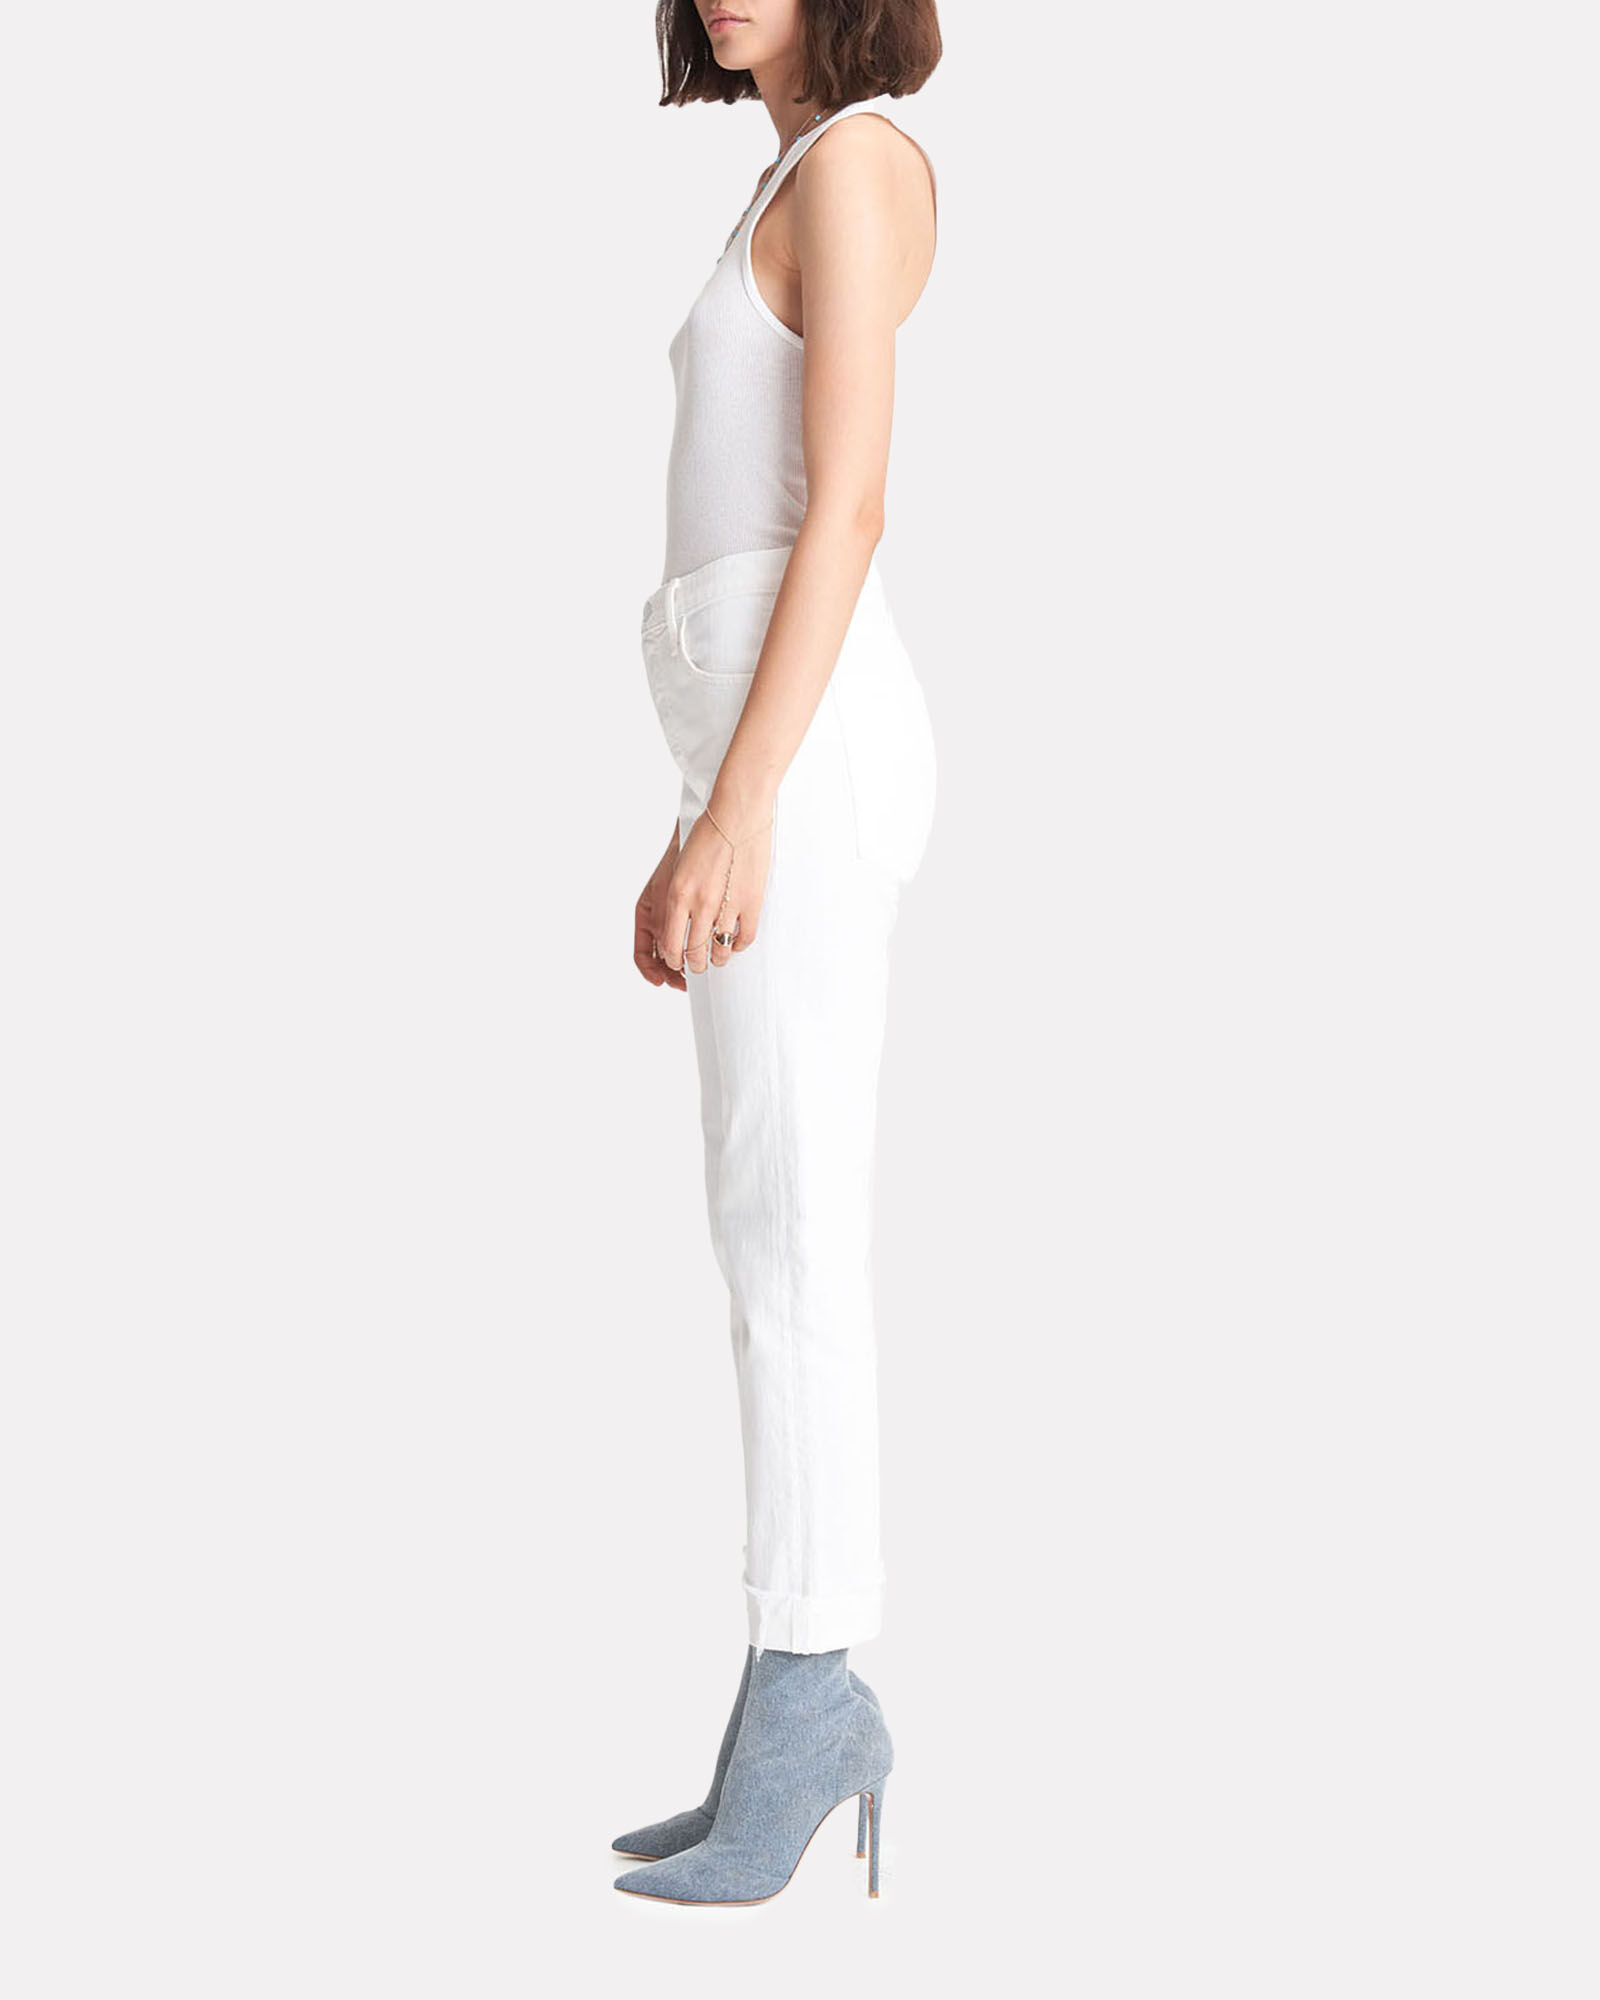 The Scrapper Cuff Ankle Fray Jeans, TOTALLY INNOCENT, hi-res